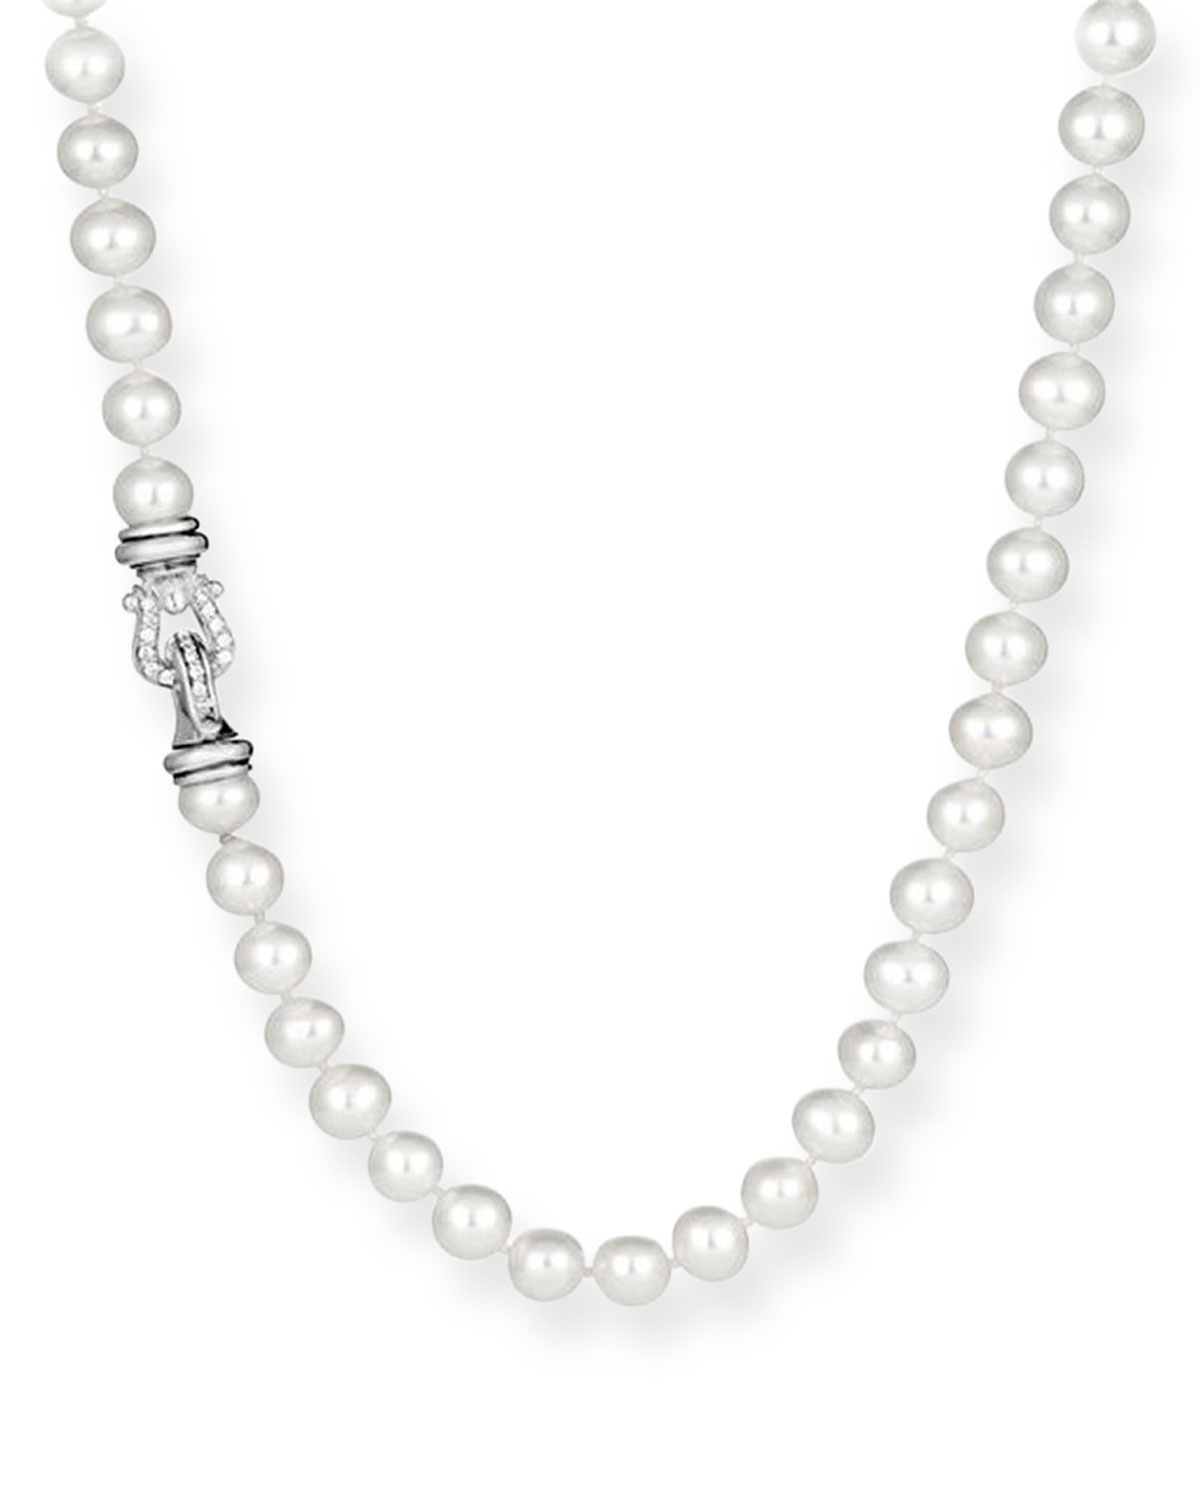 Pearl Necklace with Diamonds, 72